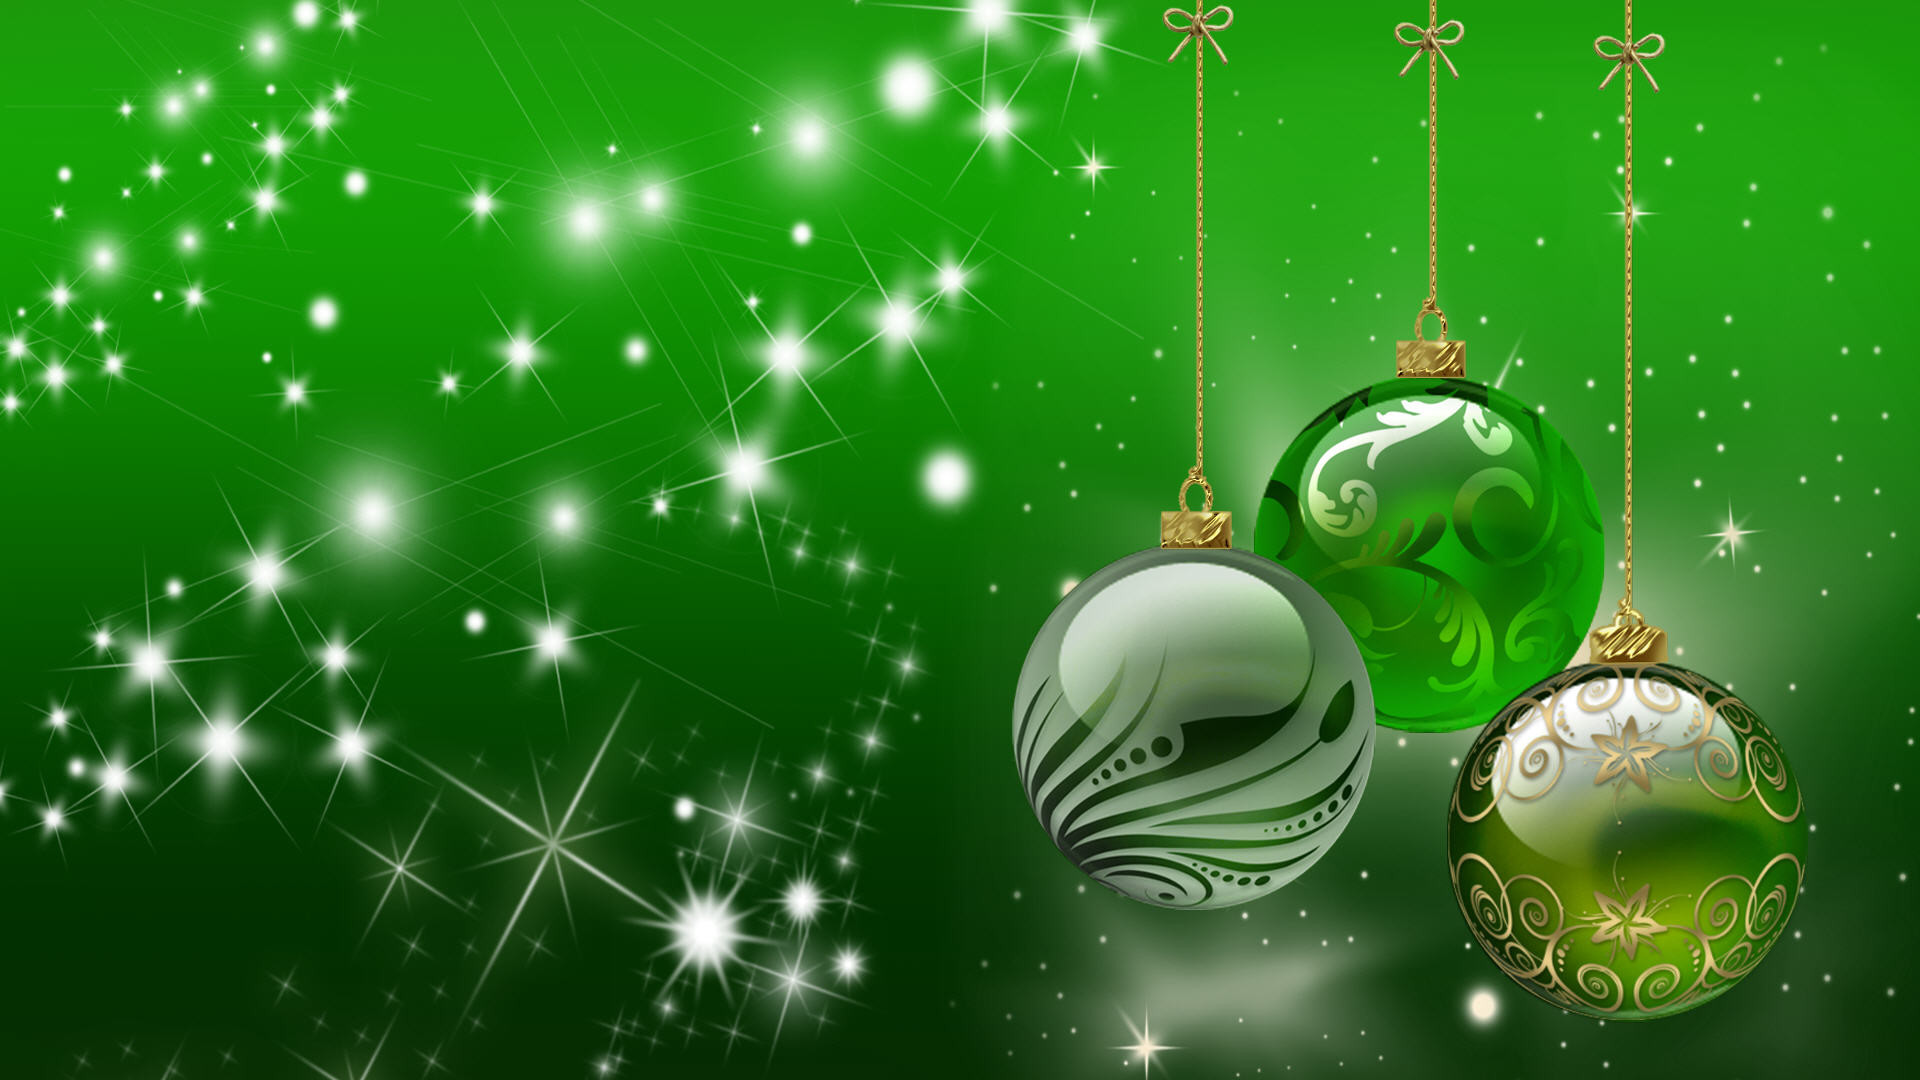 1920x1080 Green Holiday Backgrounds 18367